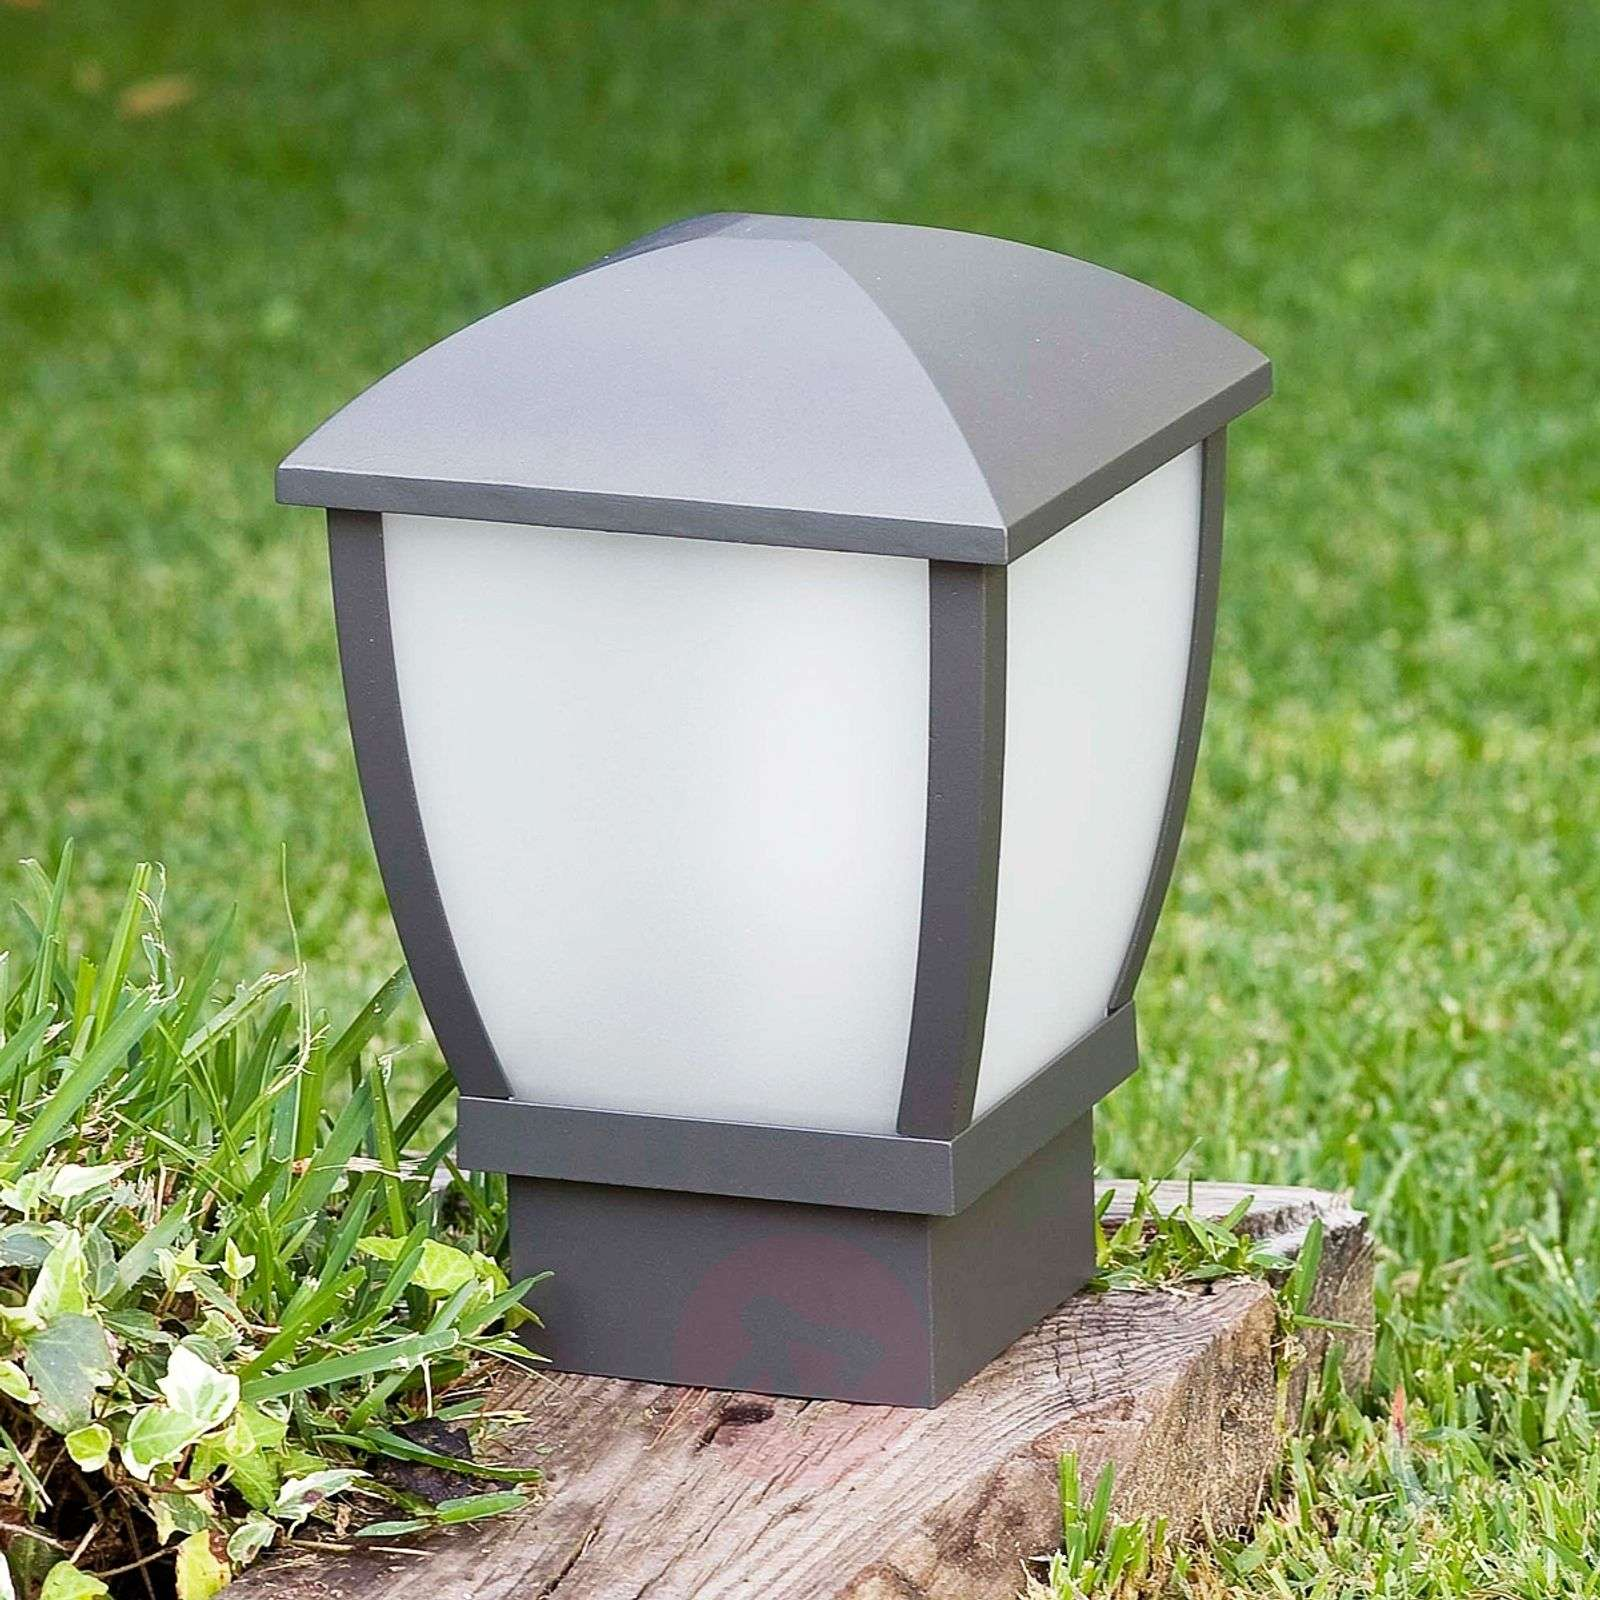 Luminaire pour socle moderne Wilma-3505301-01